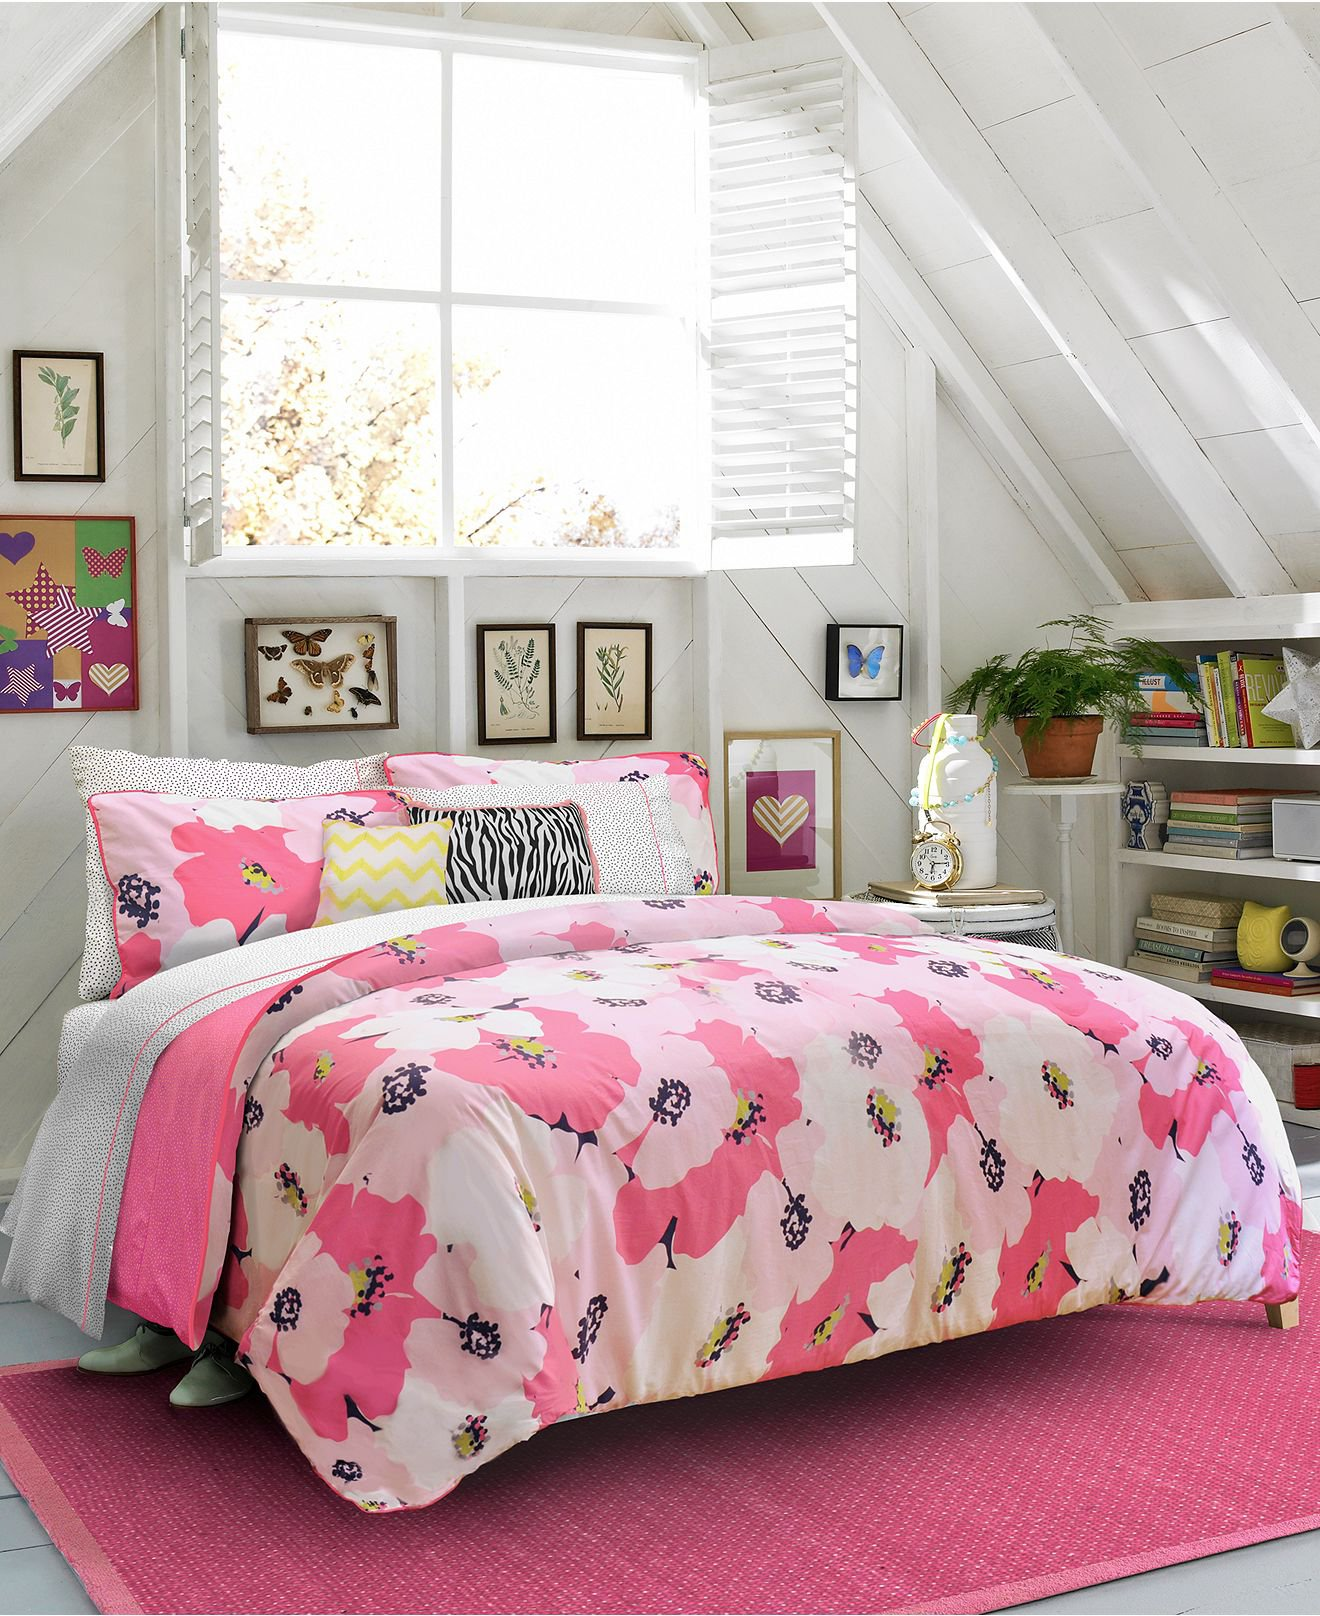 teen vogue bedding poppy dreams from macys. Black Bedroom Furniture Sets. Home Design Ideas